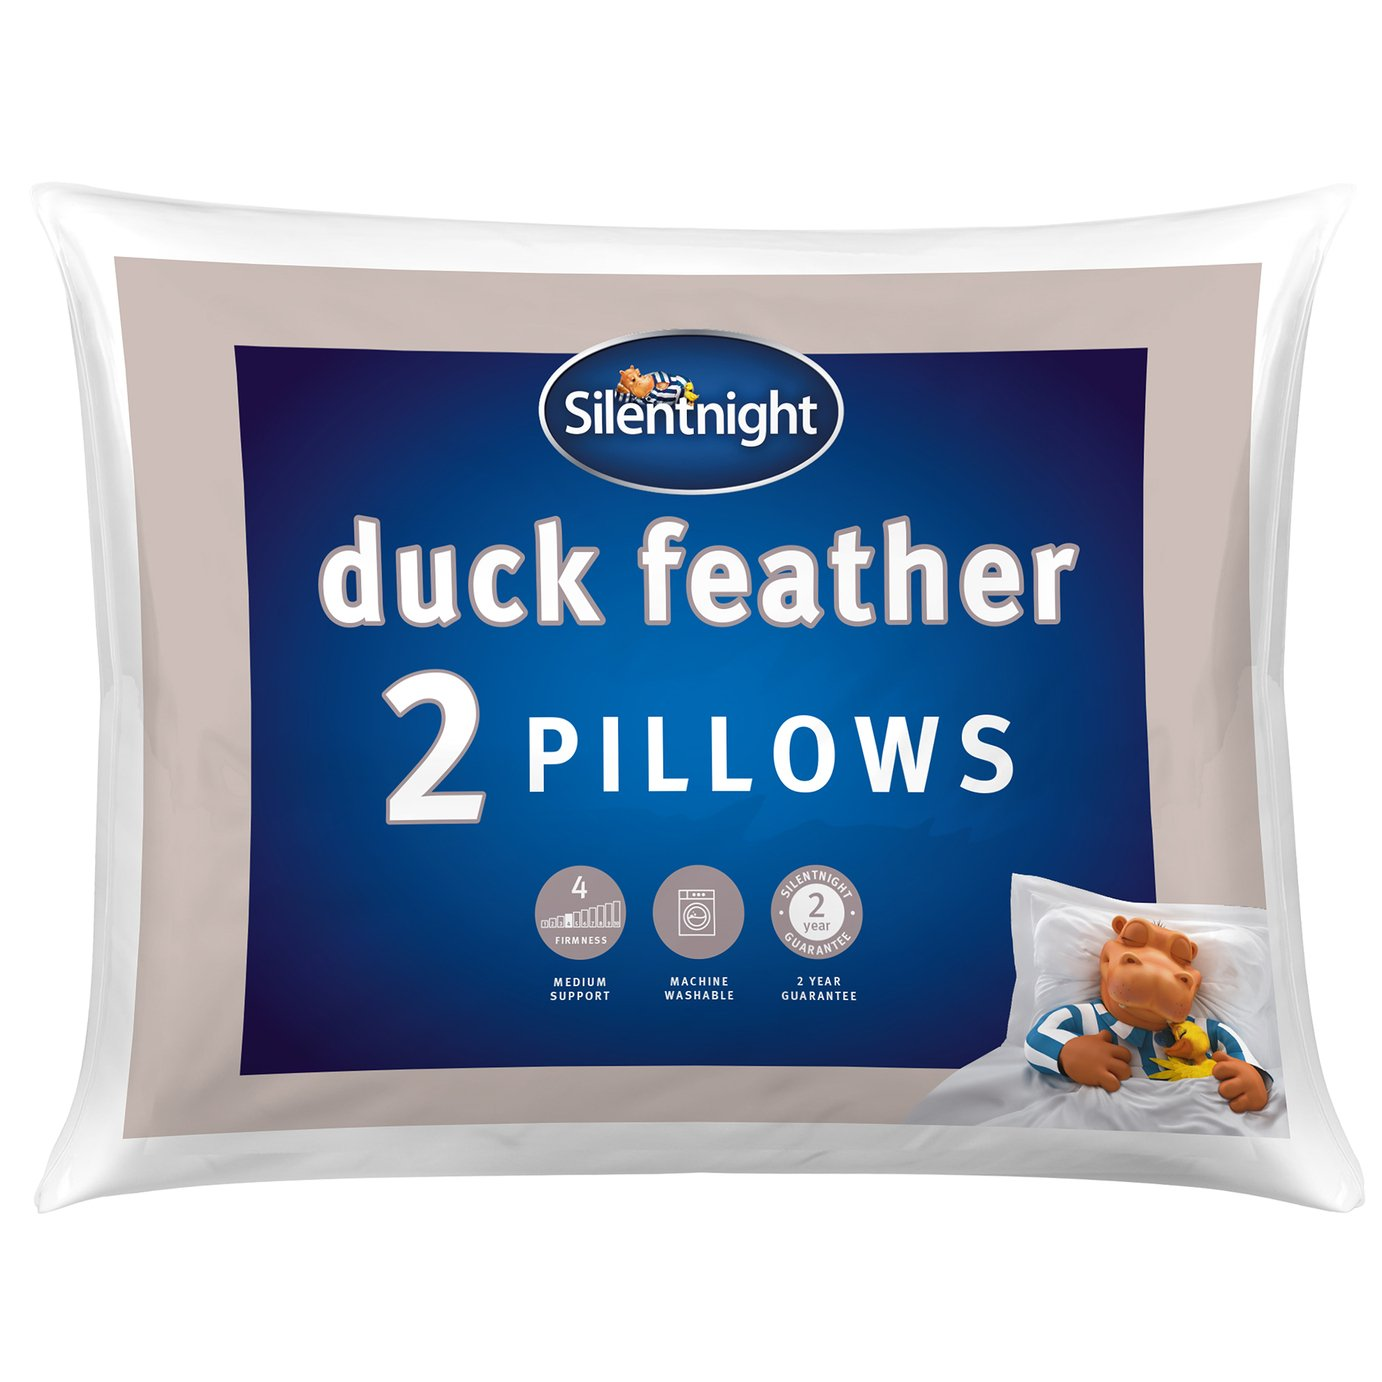 Silentnight Duck Feather Pillow - 2 Pack